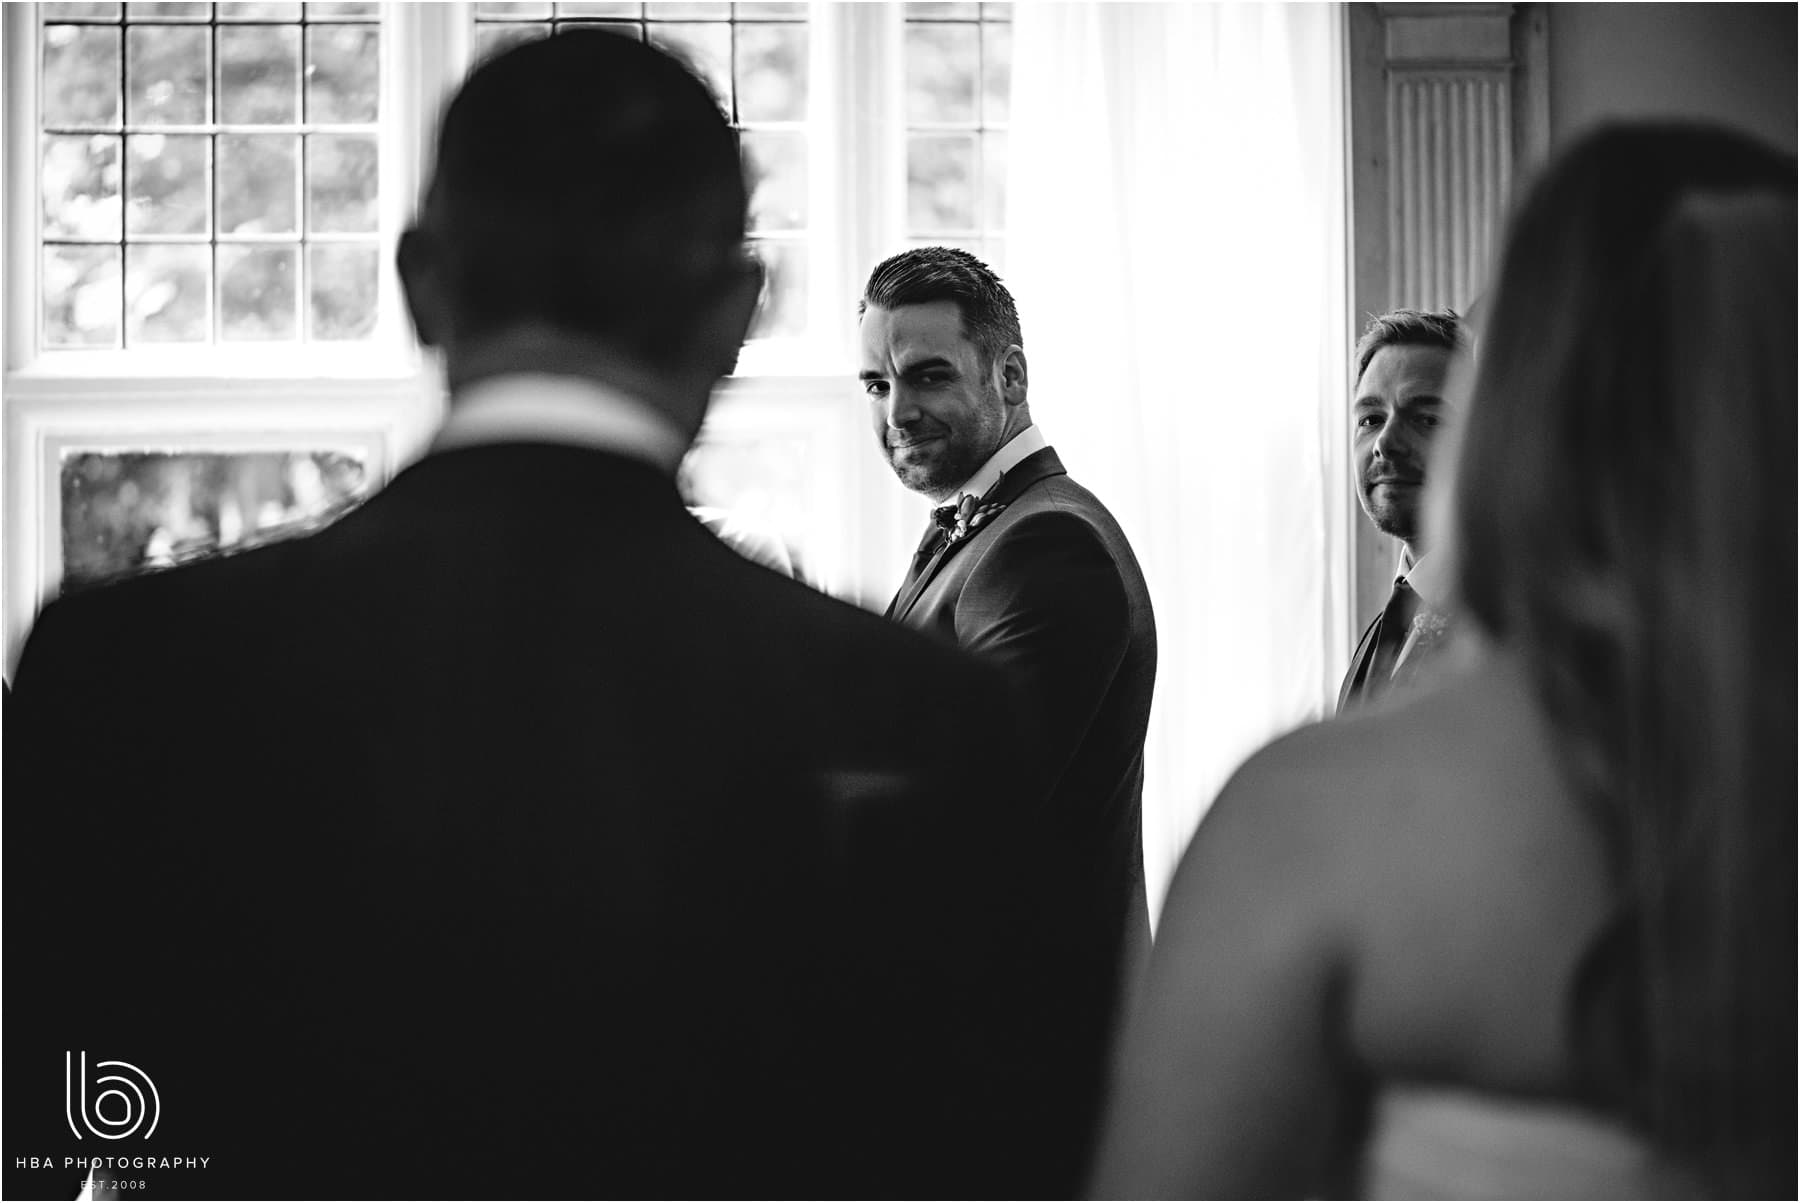 the grooms face as the bride walks down the aisle